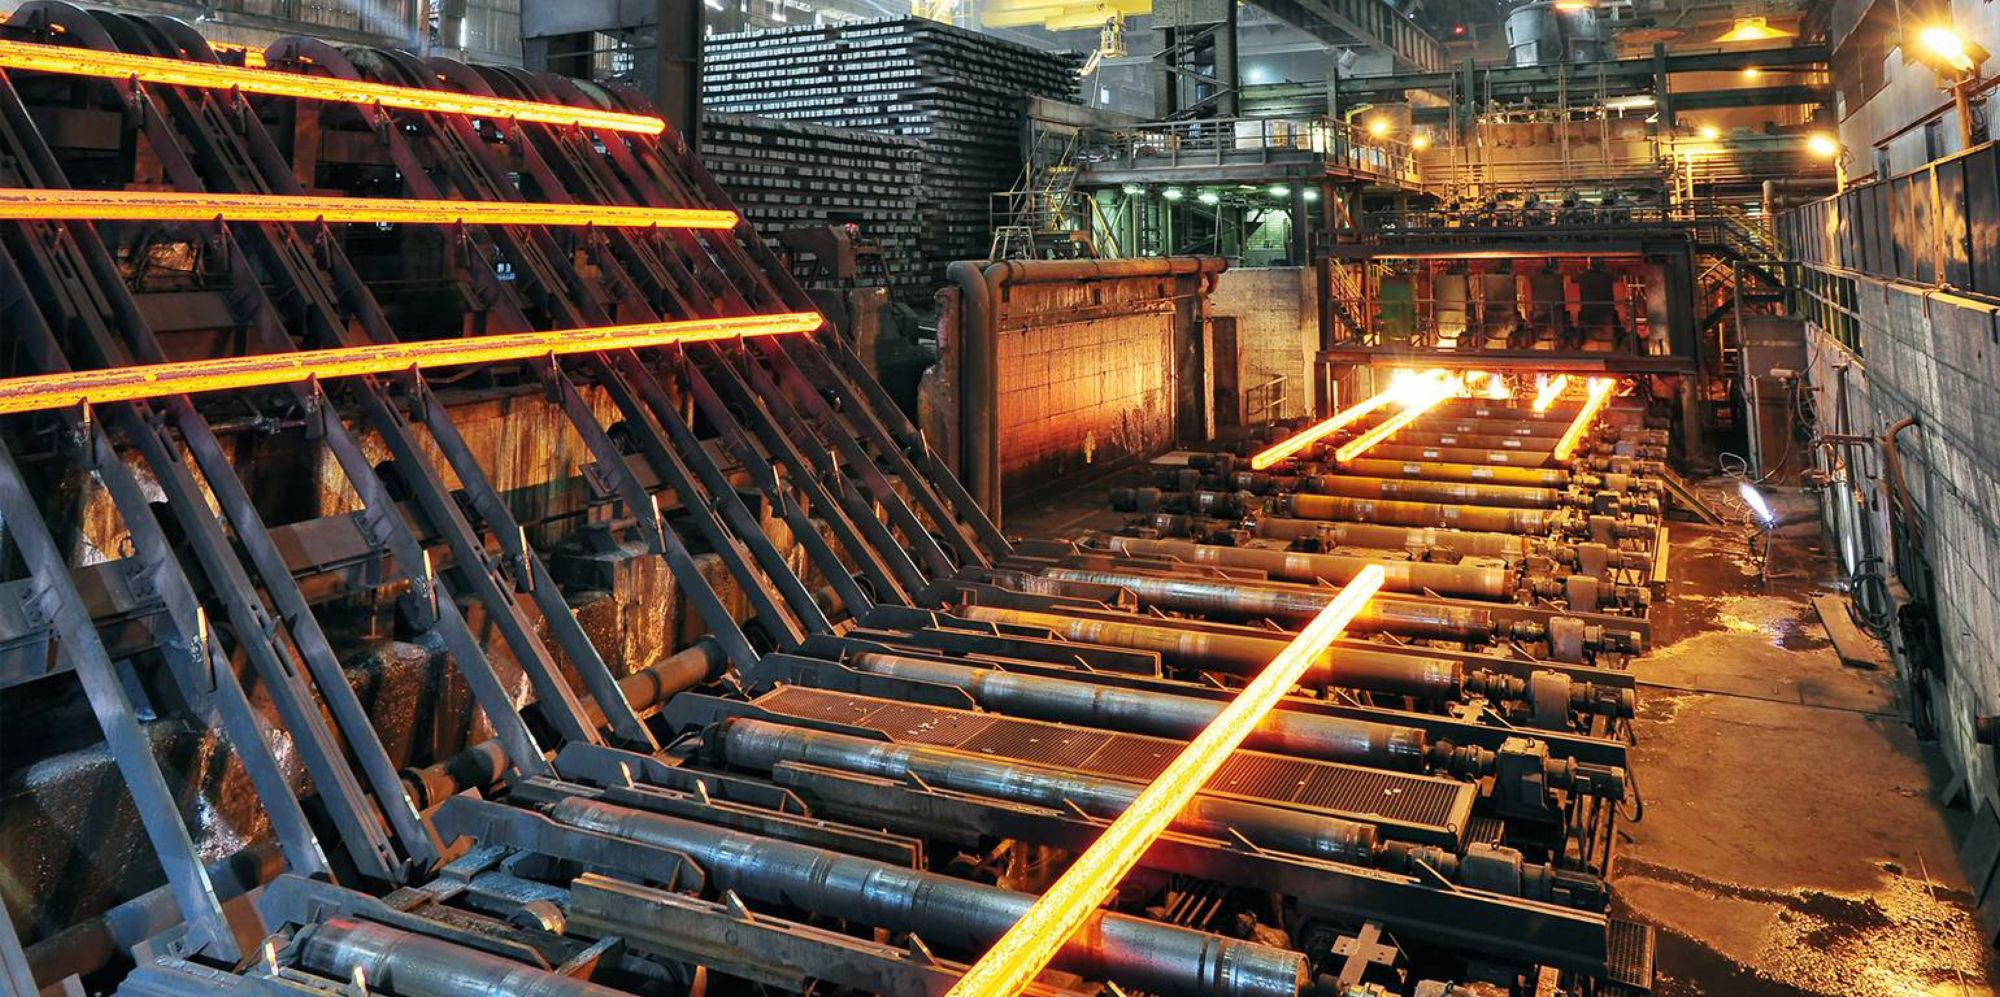 Metal and steel works